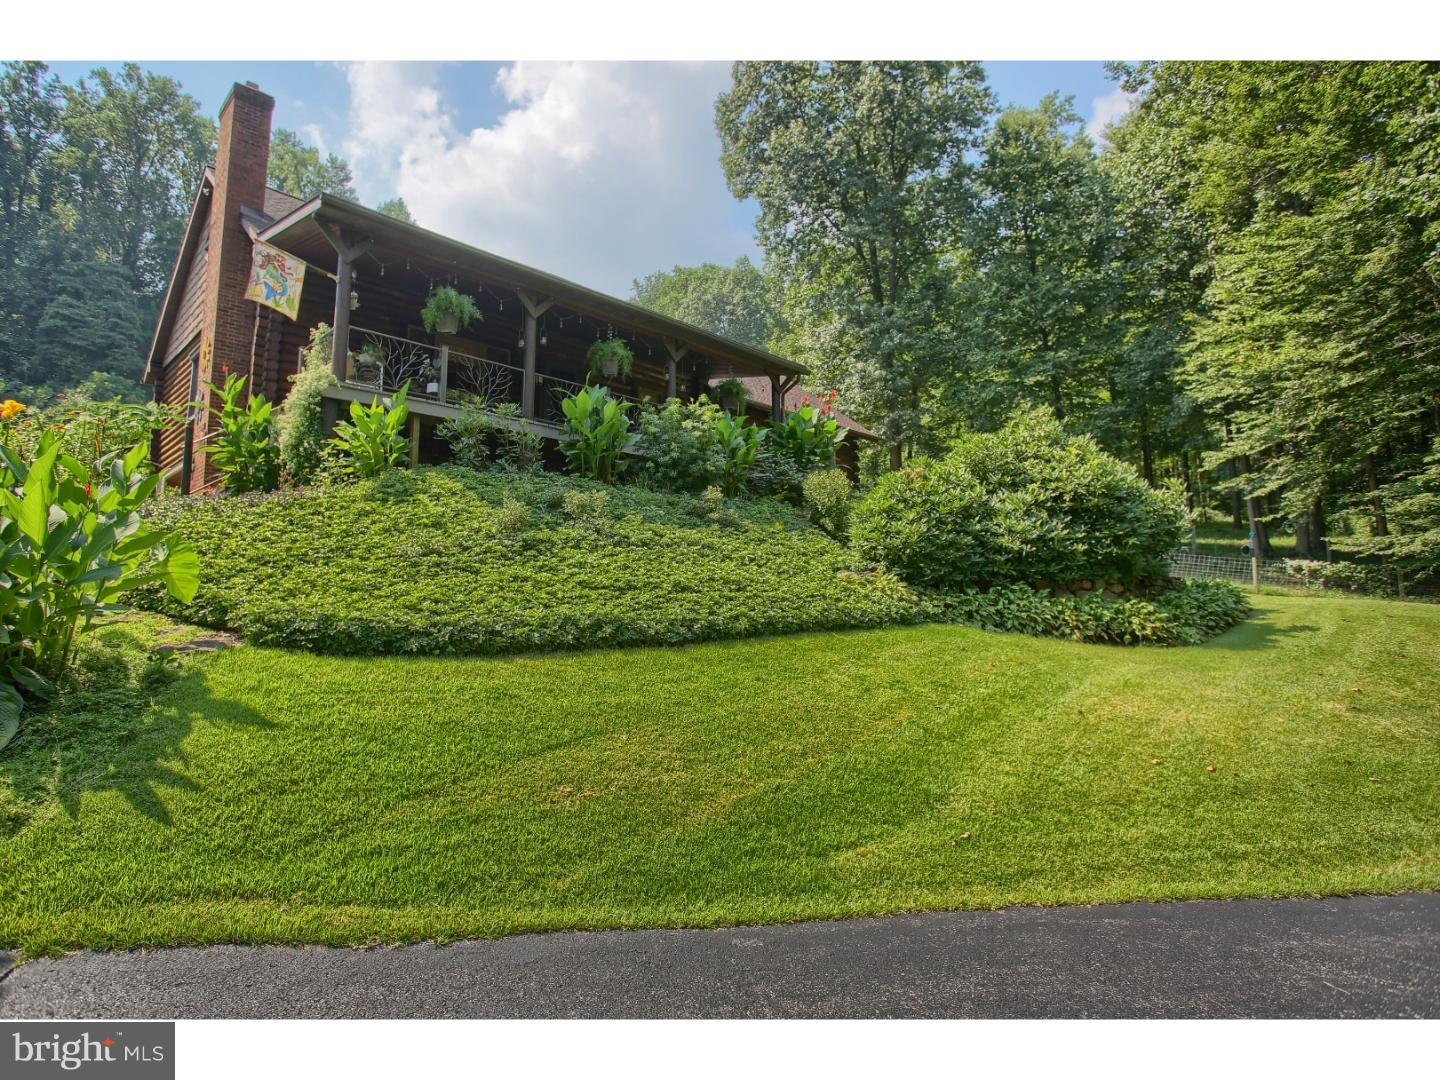 54 SPECK ROAD, MOHNTON, PA 19540